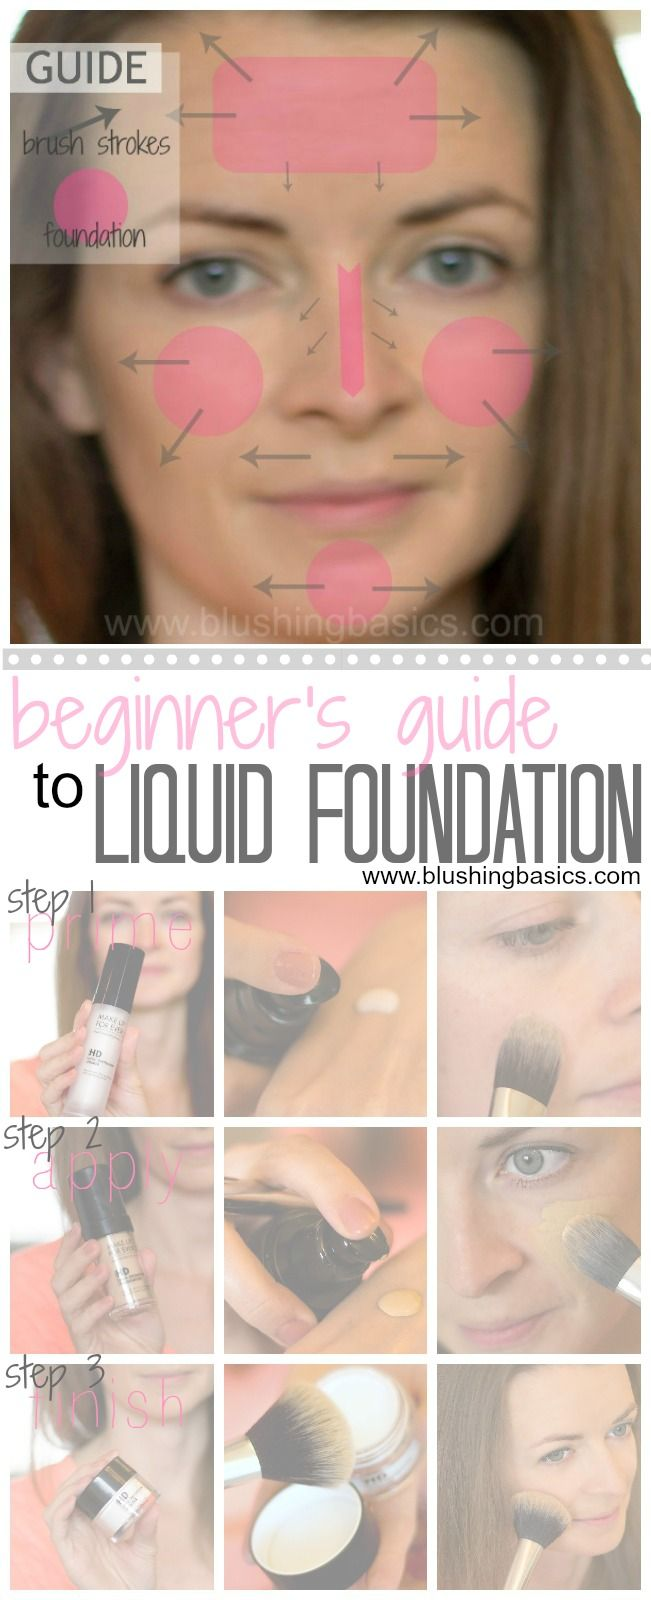 Miss Beauty: Beginner's Guide - How to Apply Liquid Foundation